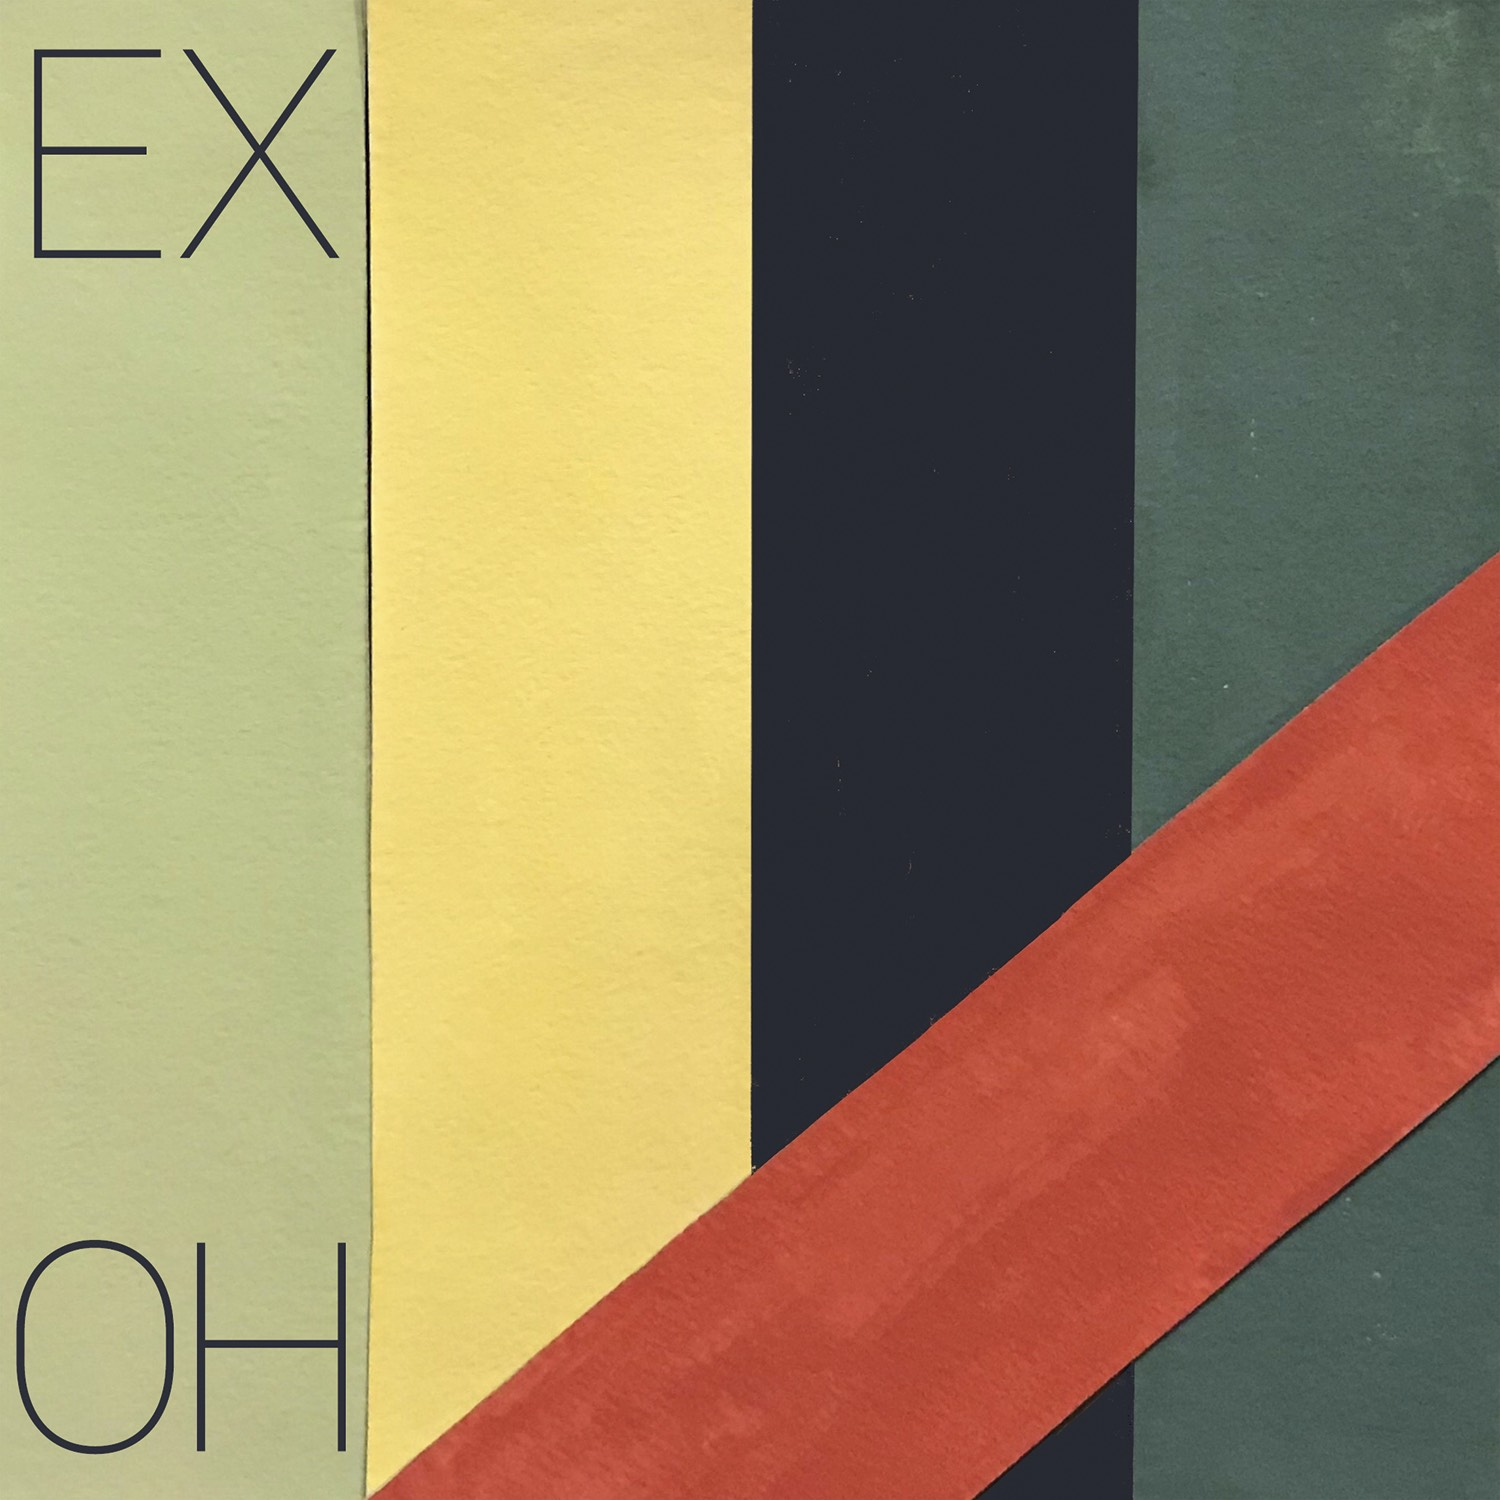 Multi-colored cover art for EX OH's new single / album